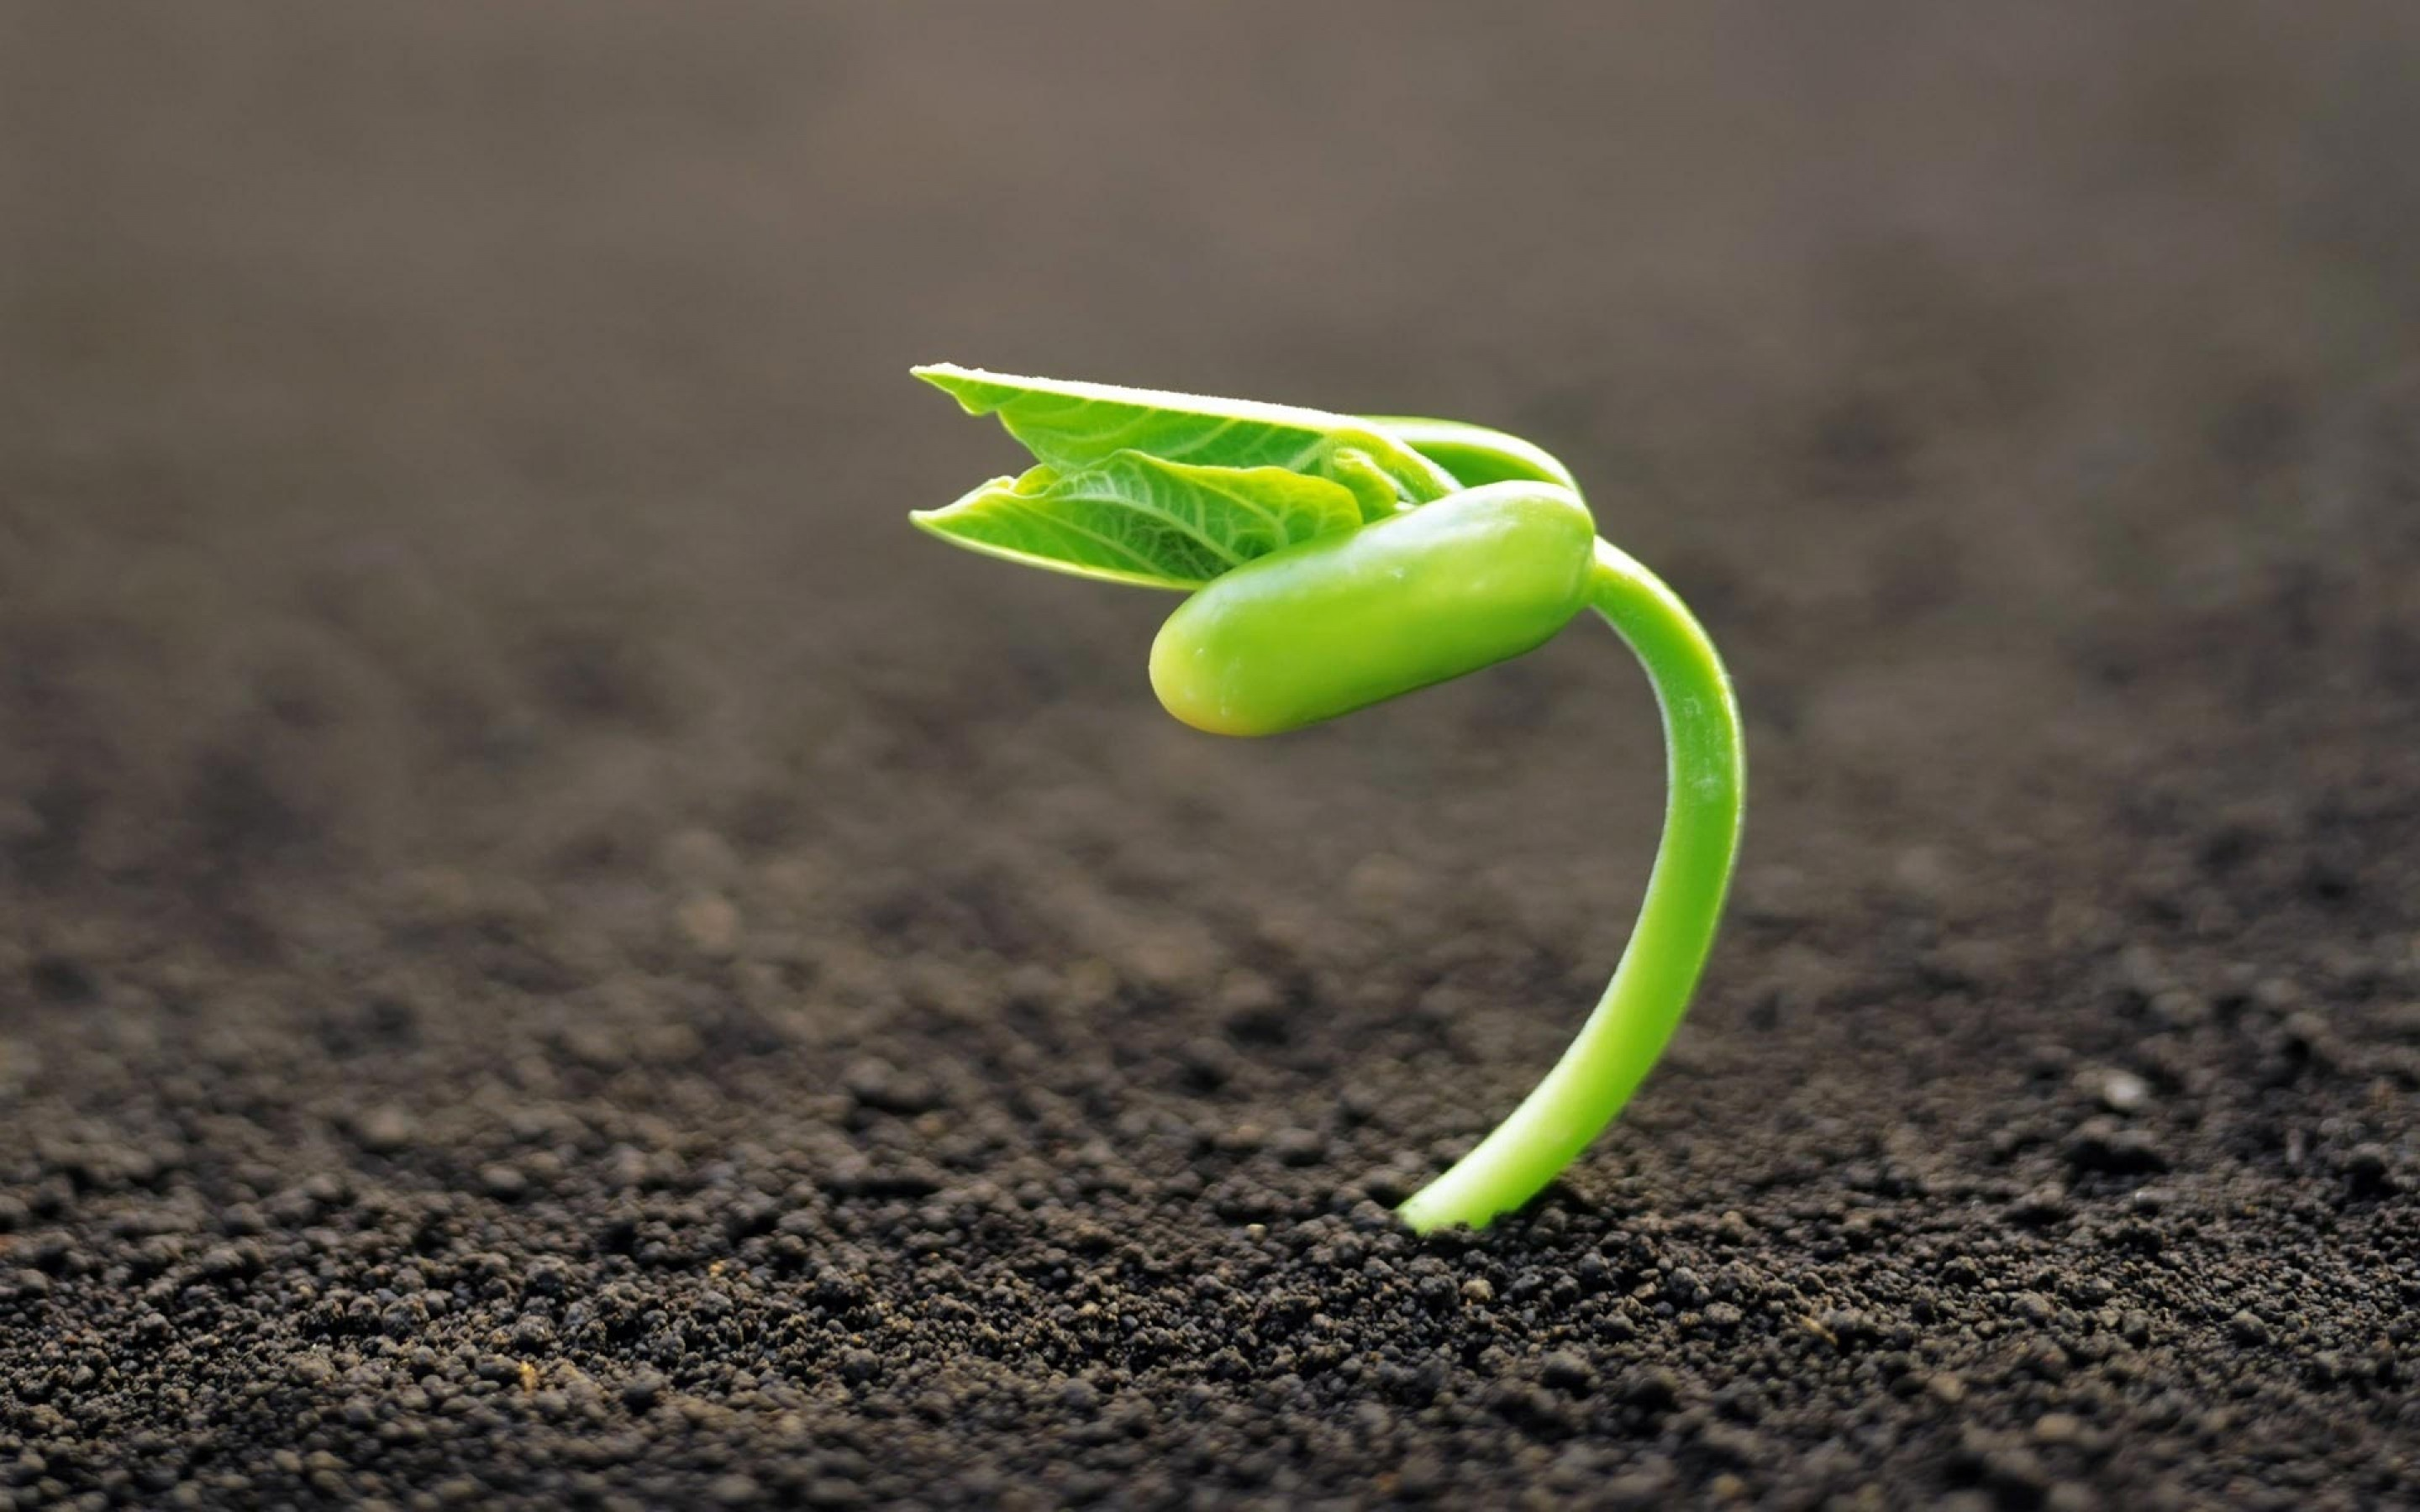 strong-vitality-germination-plant-nature-1800x2880